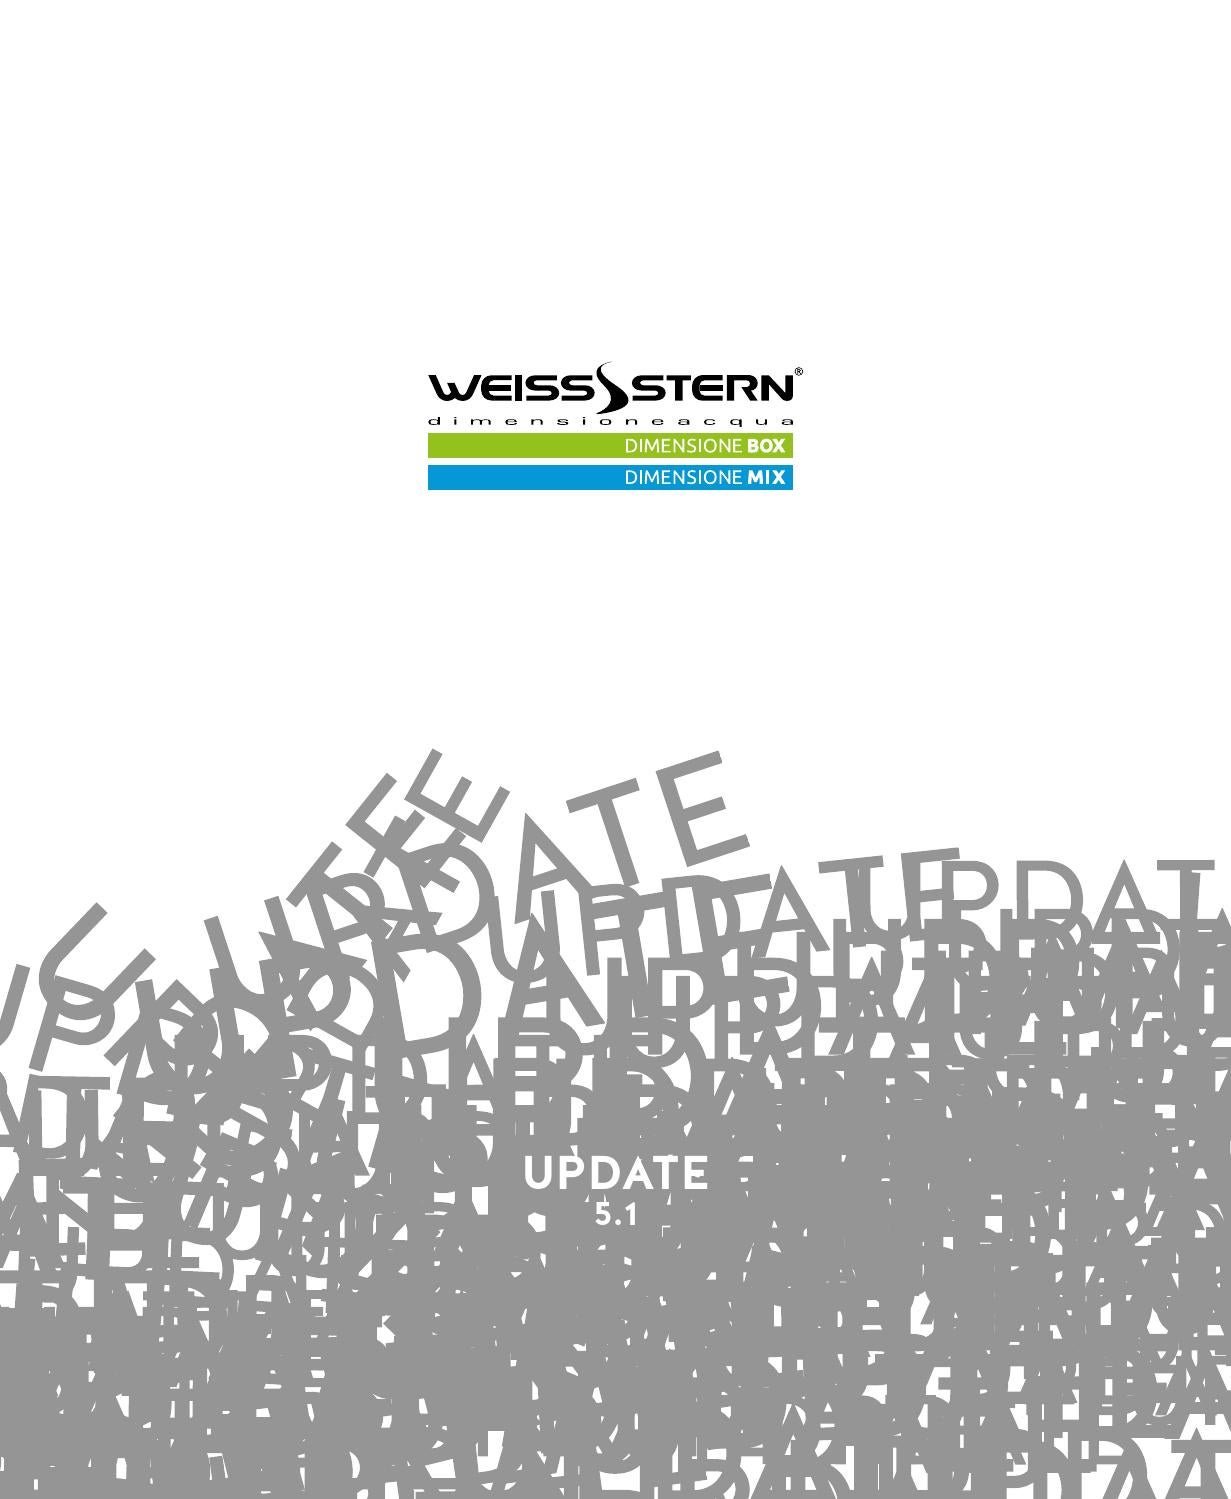 Box Doccia Weiss Stern Weiss Stern Catalogo Box Mix 2014 By Luca Busetto Issuu